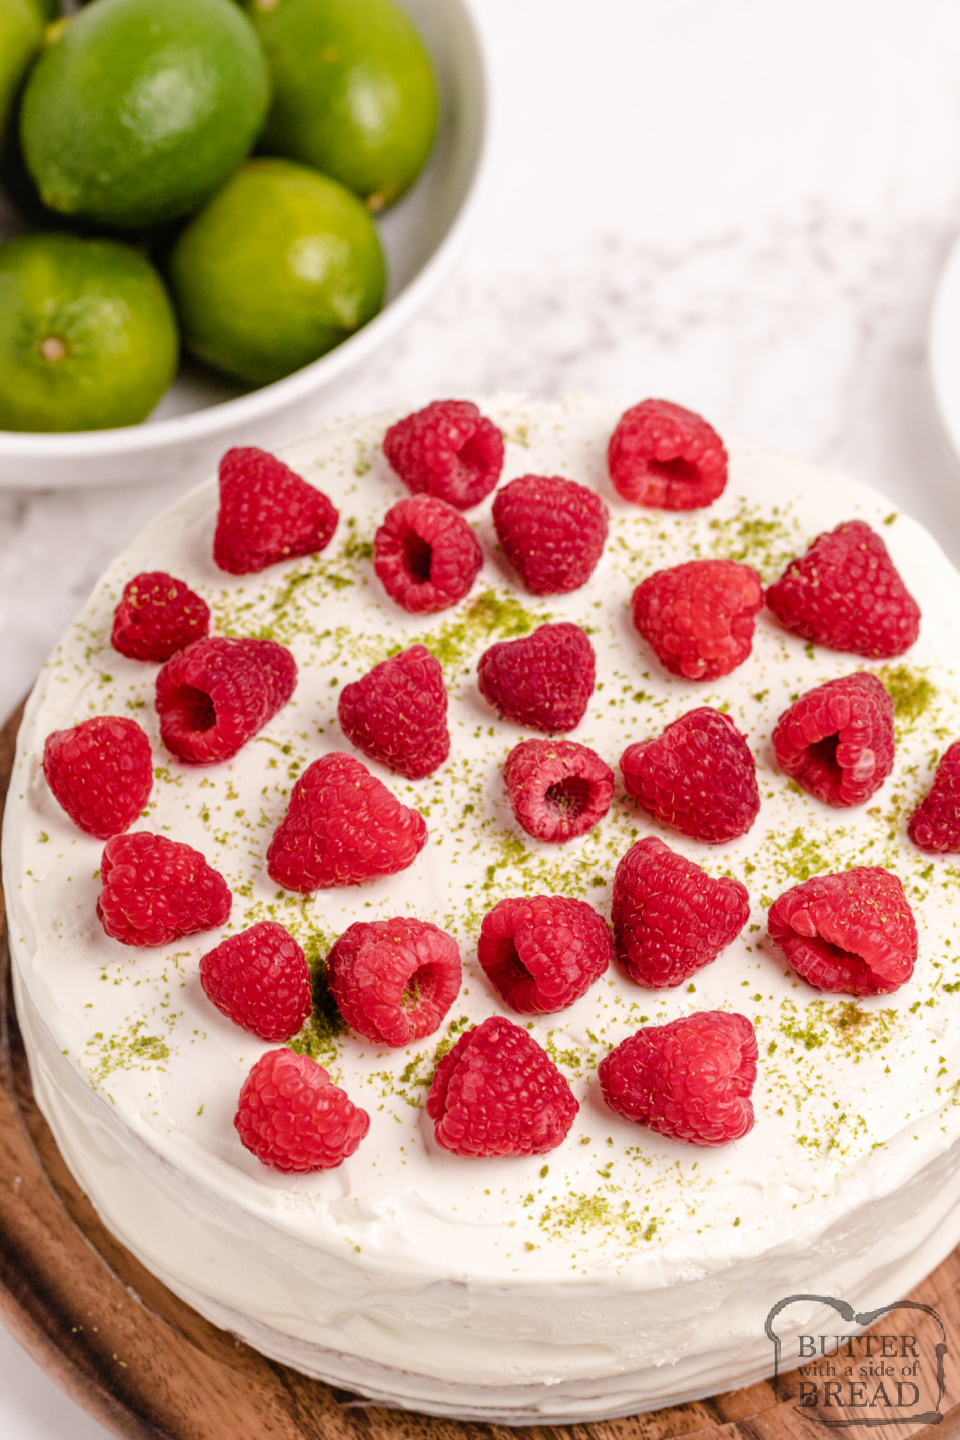 Key Lime Cake made with a cake mix and tons of lime flavor! Add fresh berries and a lime flavored whipped cream for a light, refreshing dessert that looks much fancier than it is!